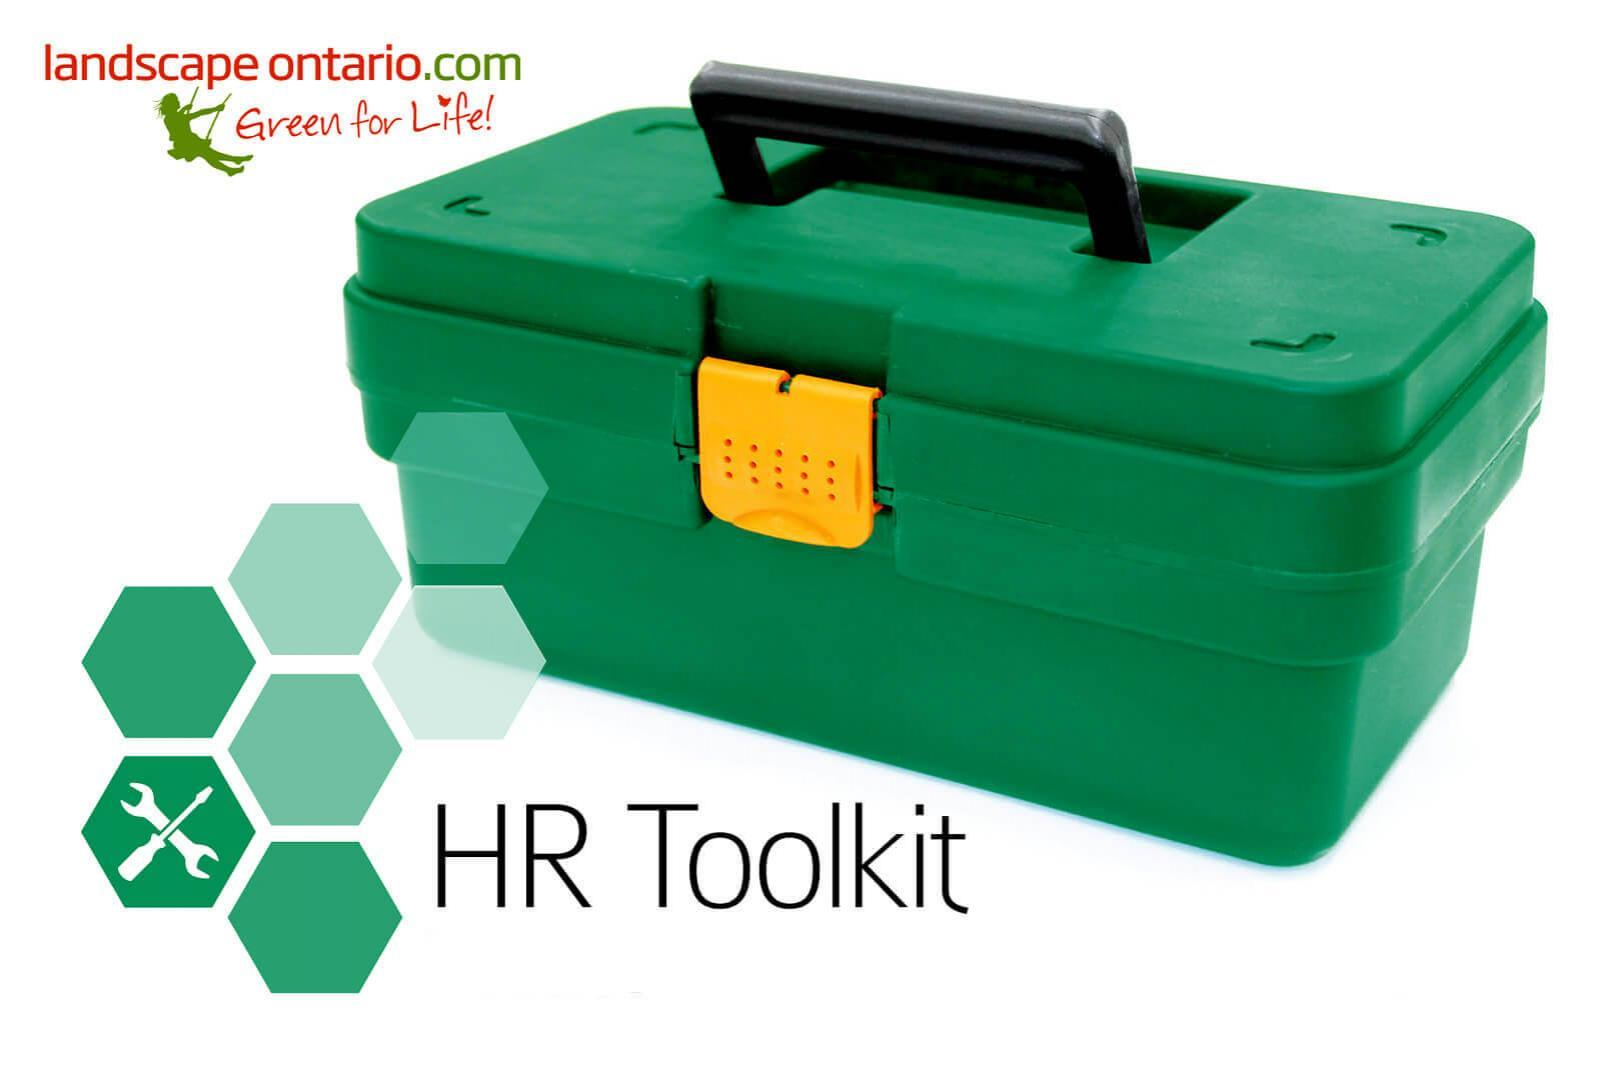 HR Toolkit for LO members